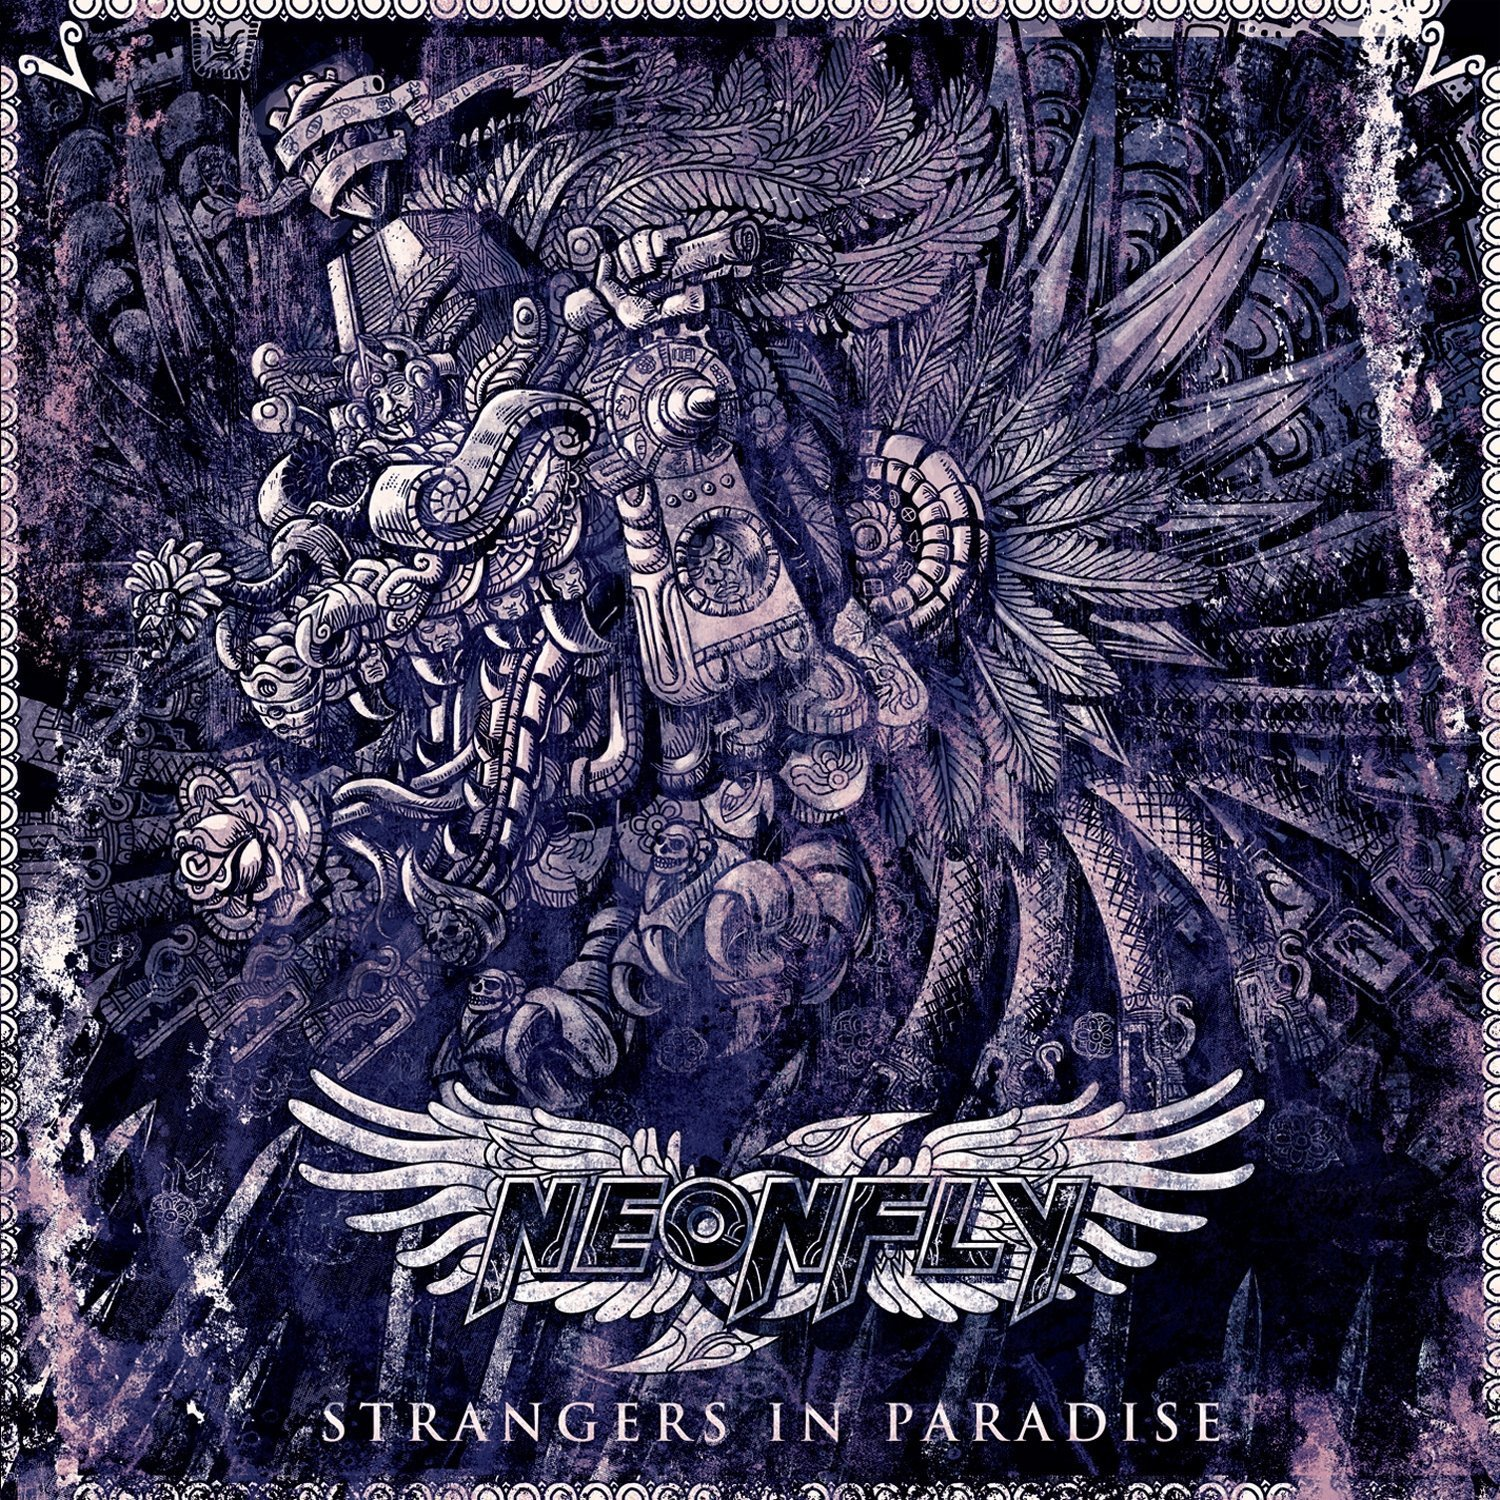 Neonfly - Strangers in Paradise